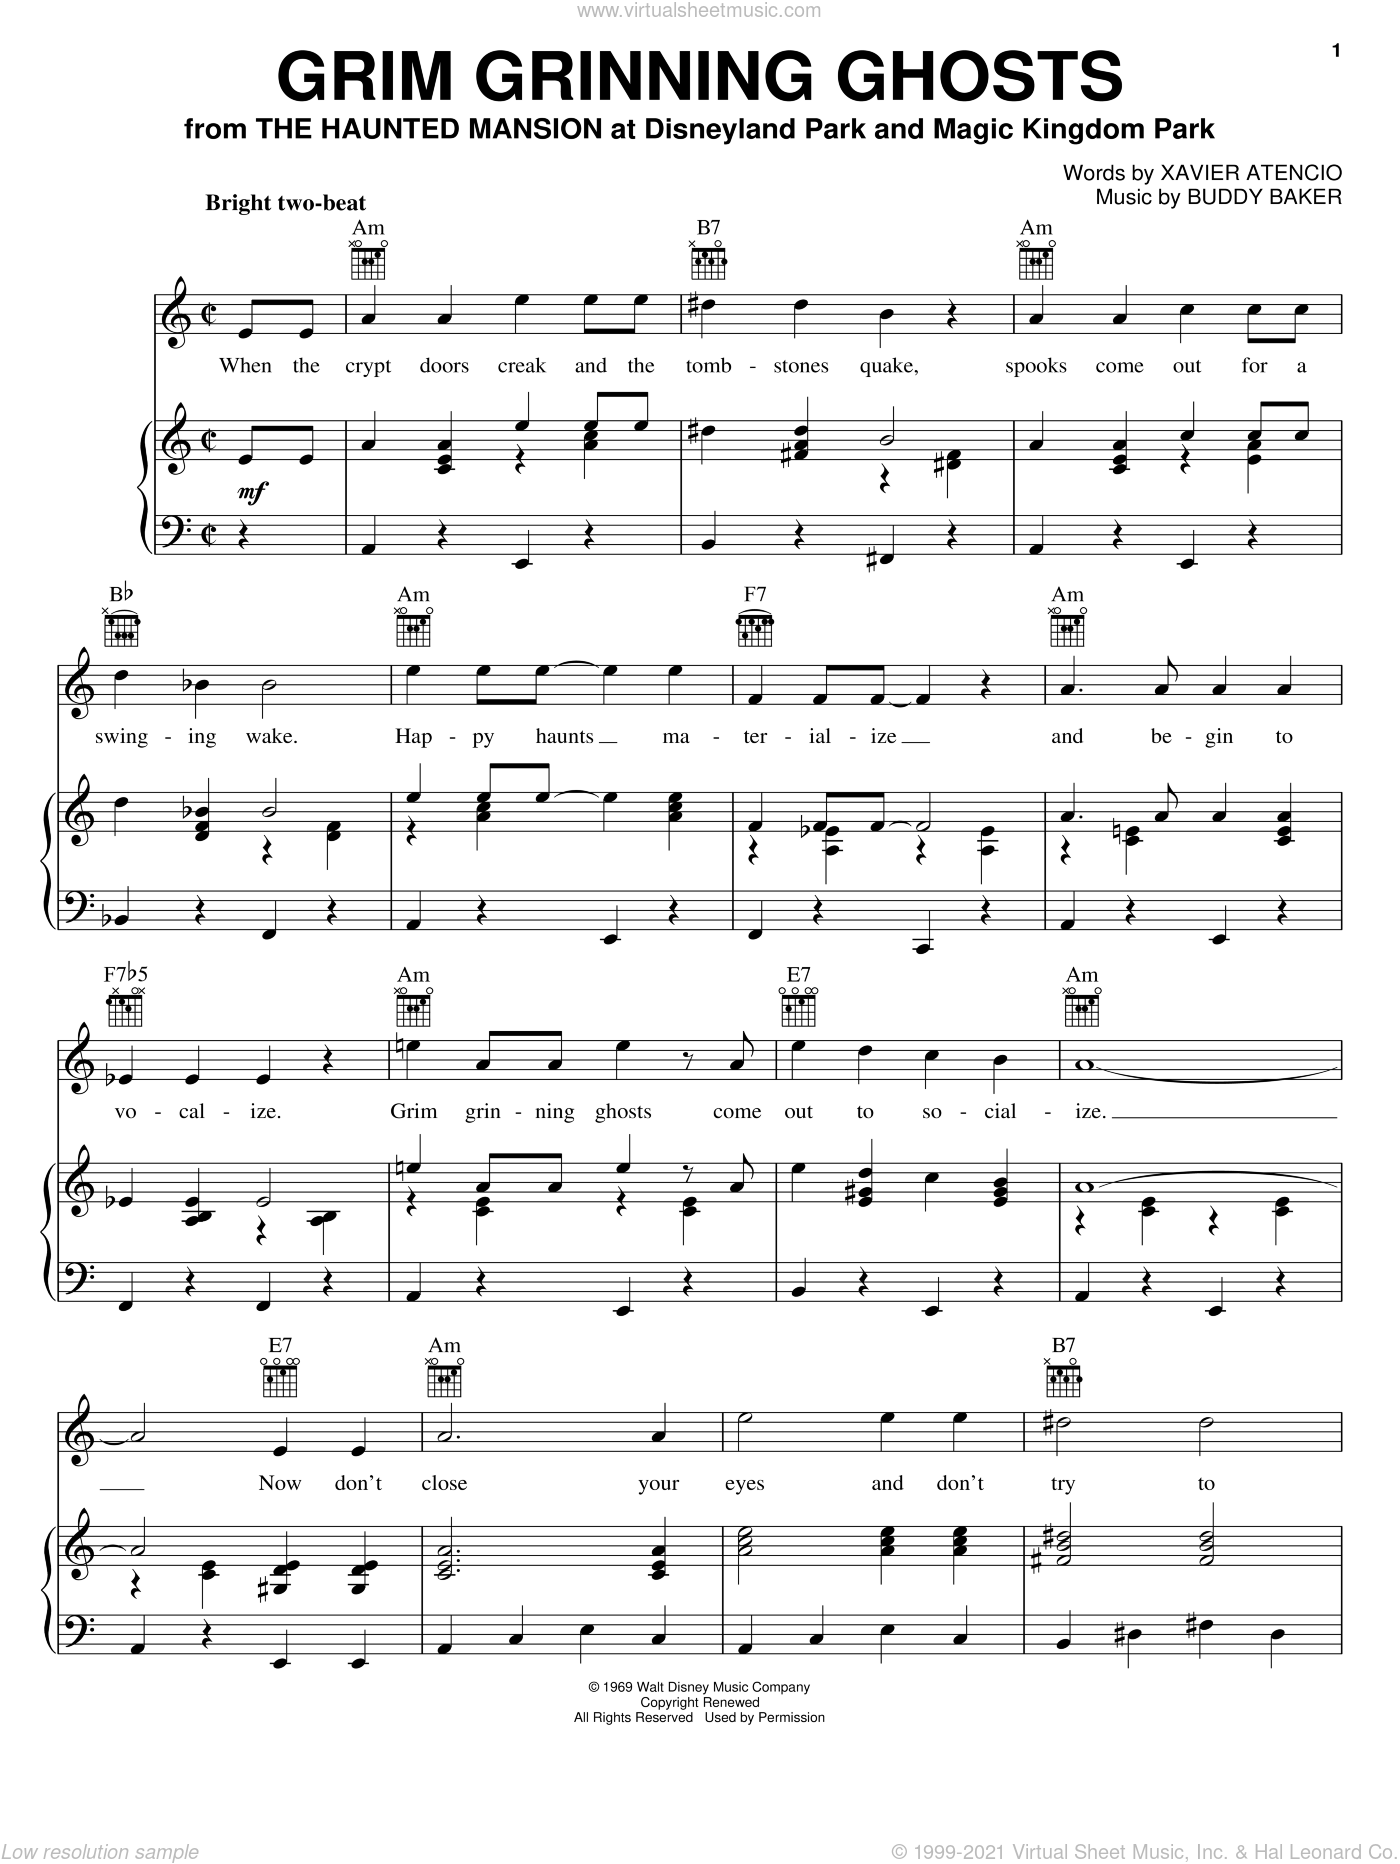 Grim Grinning Ghosts sheet music for voice, piano or guitar by Buddy Baker and Xavier Atencio. Score Image Preview.